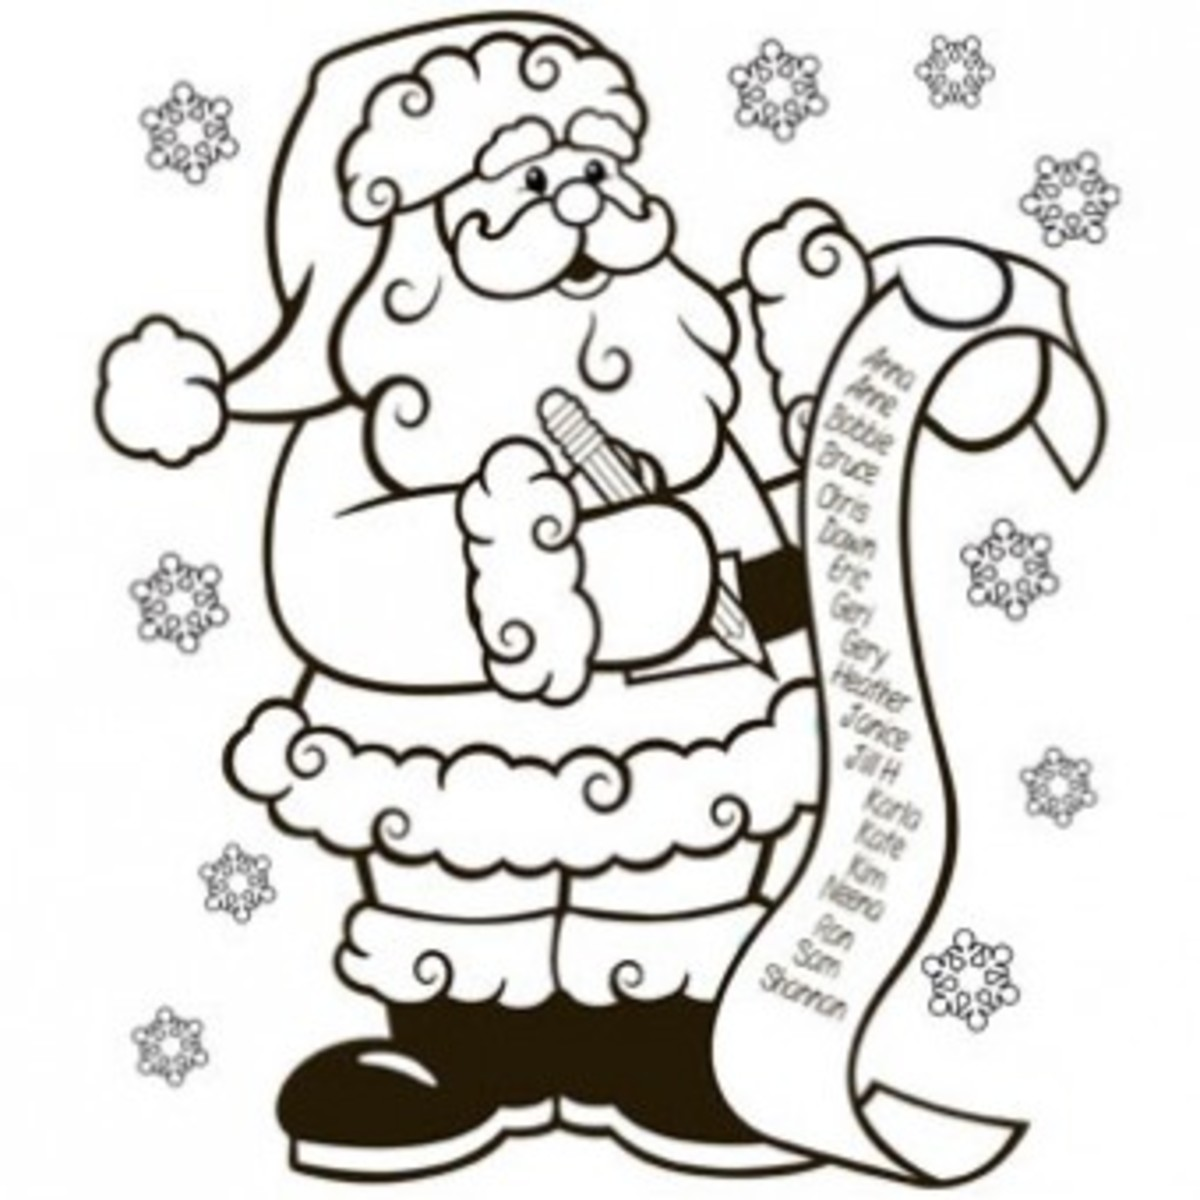 Fun free Christmas coloring pages